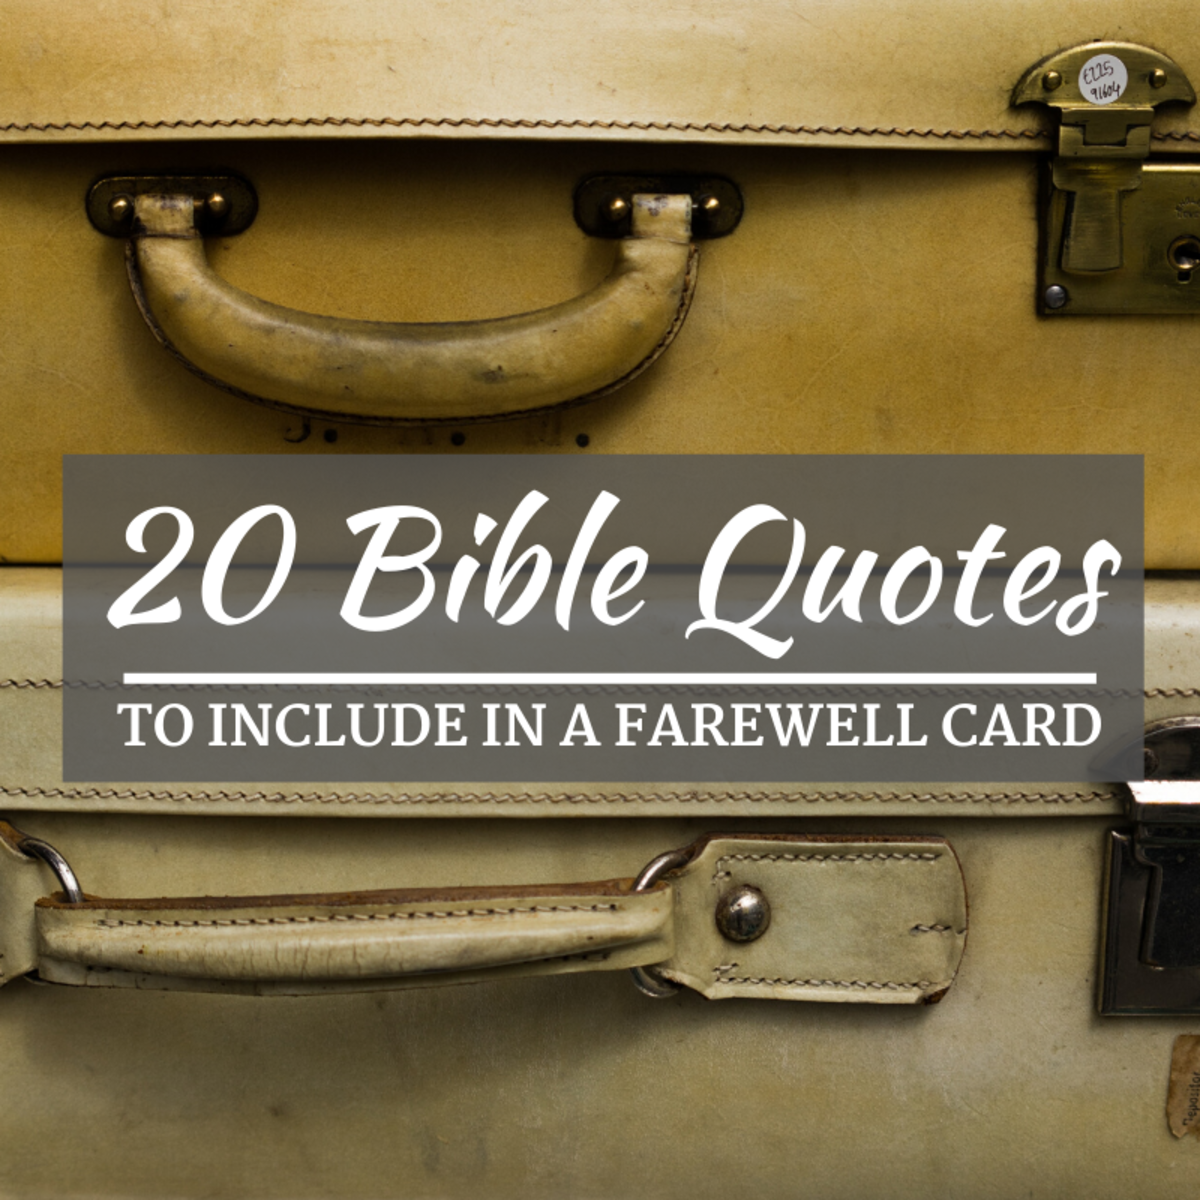 20 Bible Quotes For Your Farewell Or Goodbye Card Holidappy